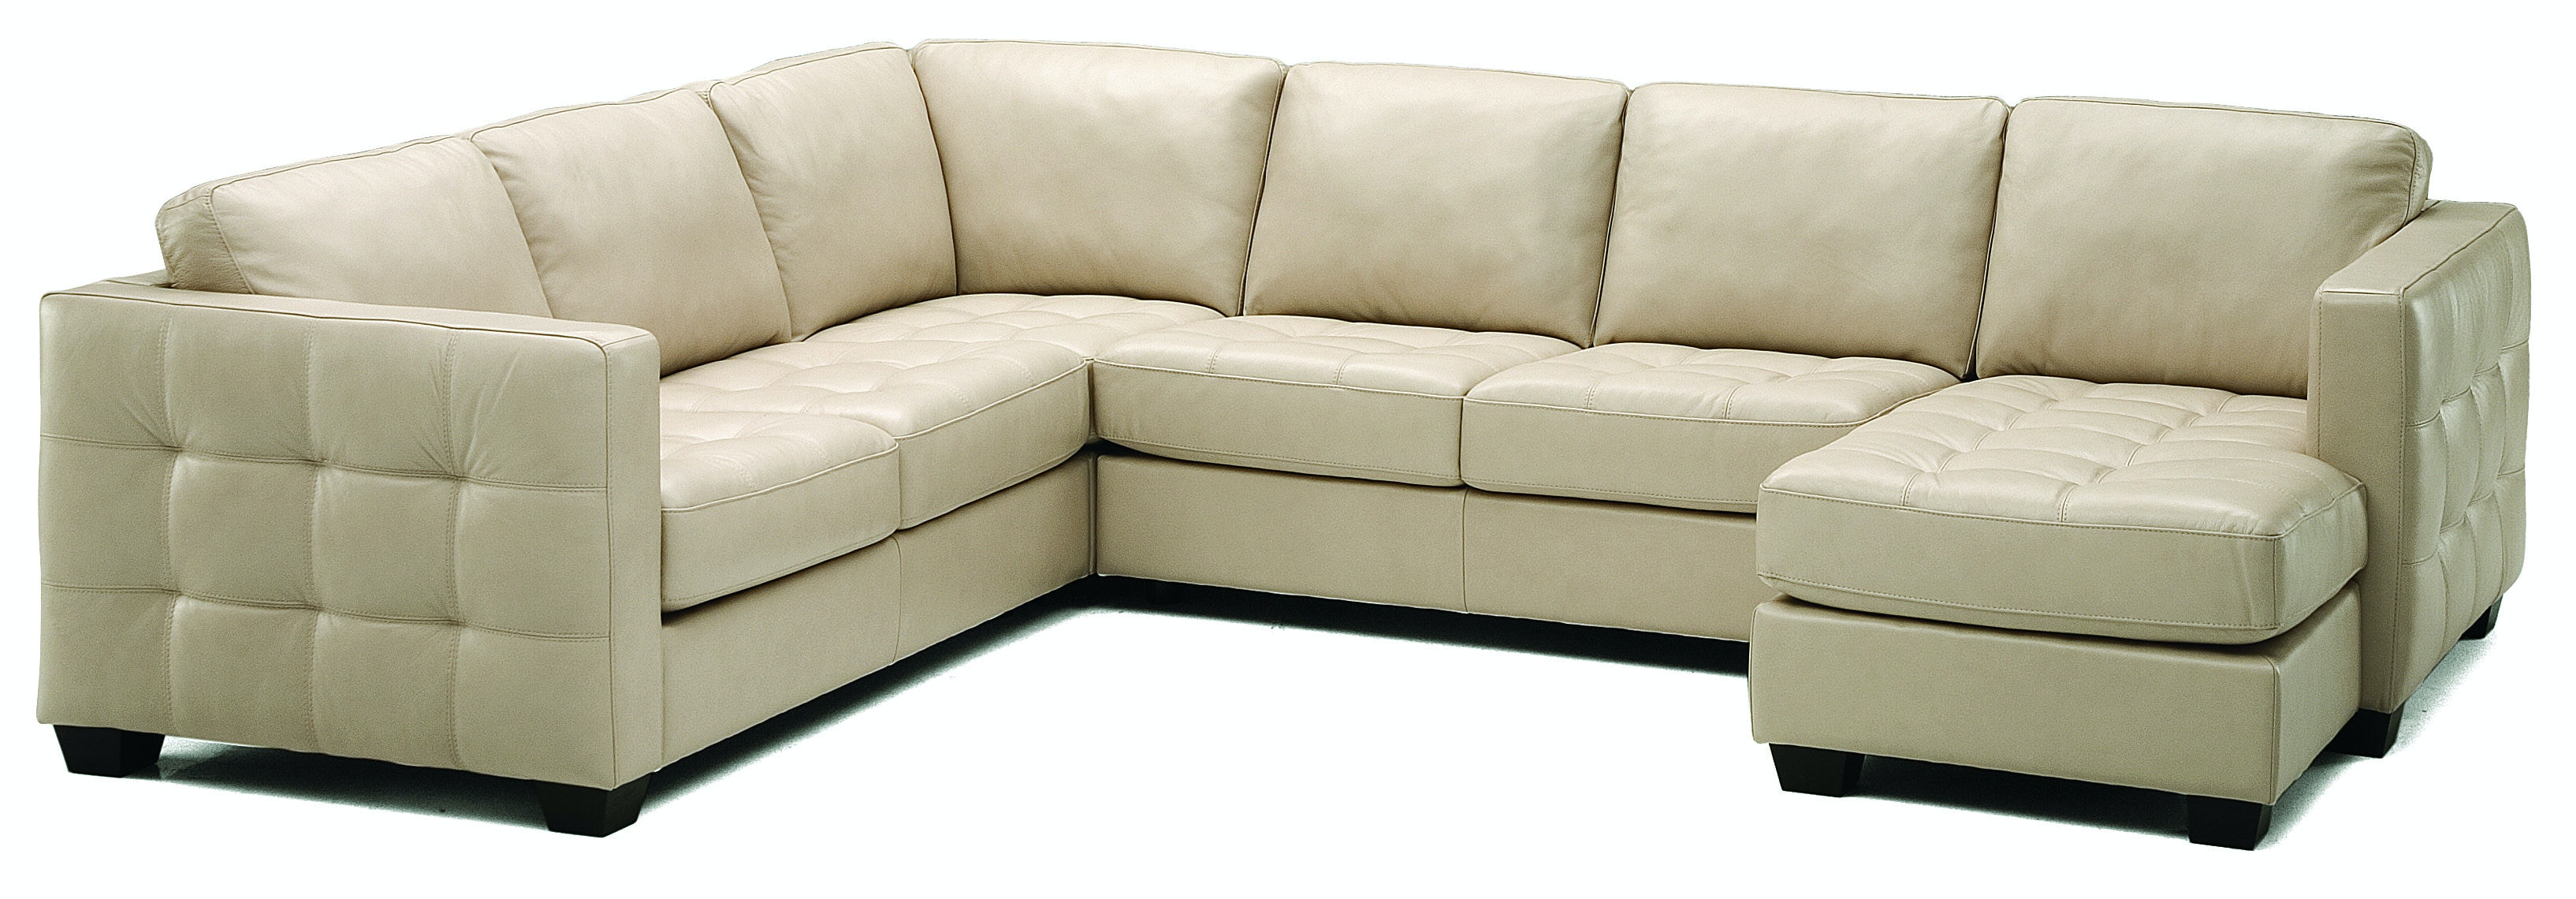 Palliser Furniture Living Room Barrett Sectional 77558. Hotels With Jacuzzi In Room Nj. Room Cooler. Truck Decor. Dining Room Wall Decor Ideas. Colonial Home Decor. Solid Wood Dining Room Sets. Discount Dining Room Furniture. Dining Room Flooring